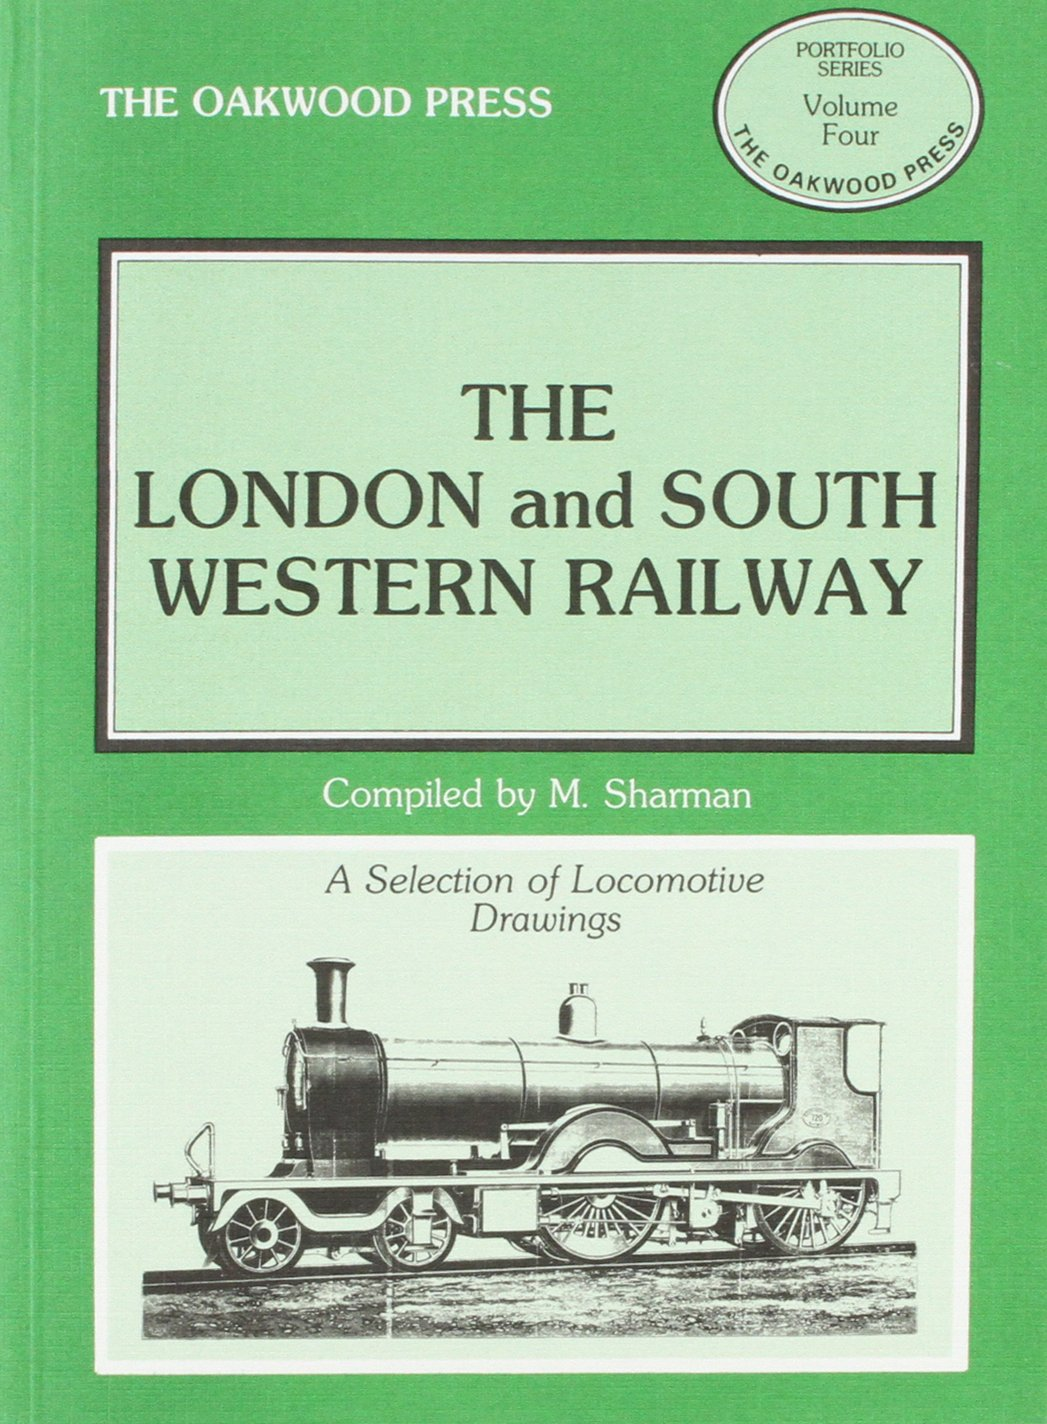 The London and South Western Railway: Locomotive Drawings in 7mm